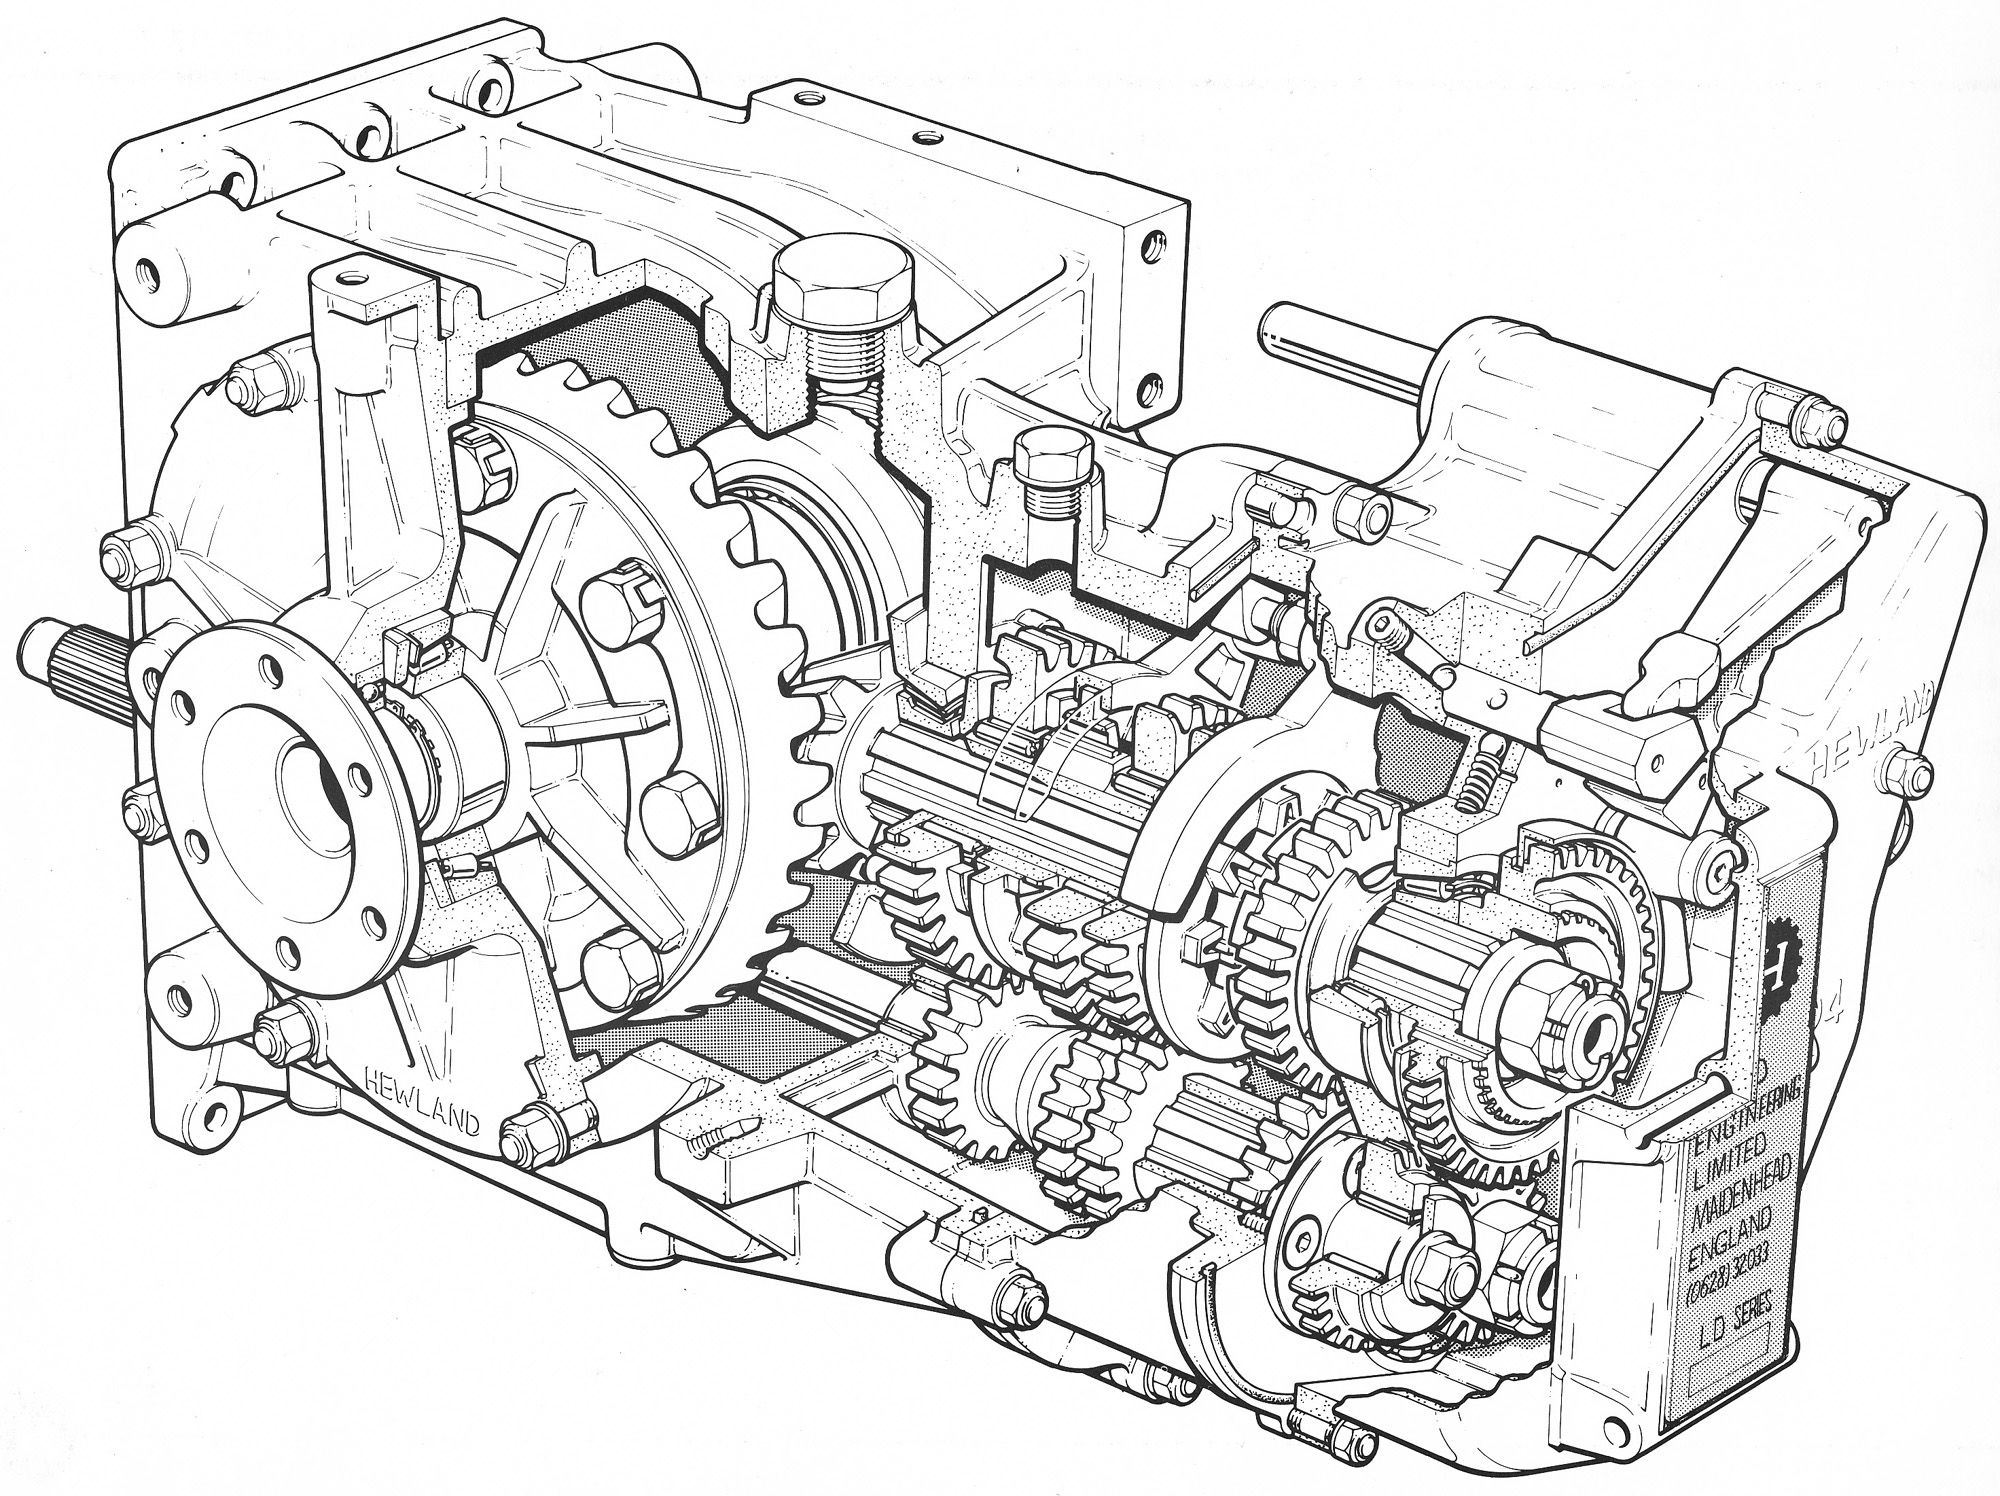 Hewland Ld200 Gearbox Illustrated By Andrew Kitson